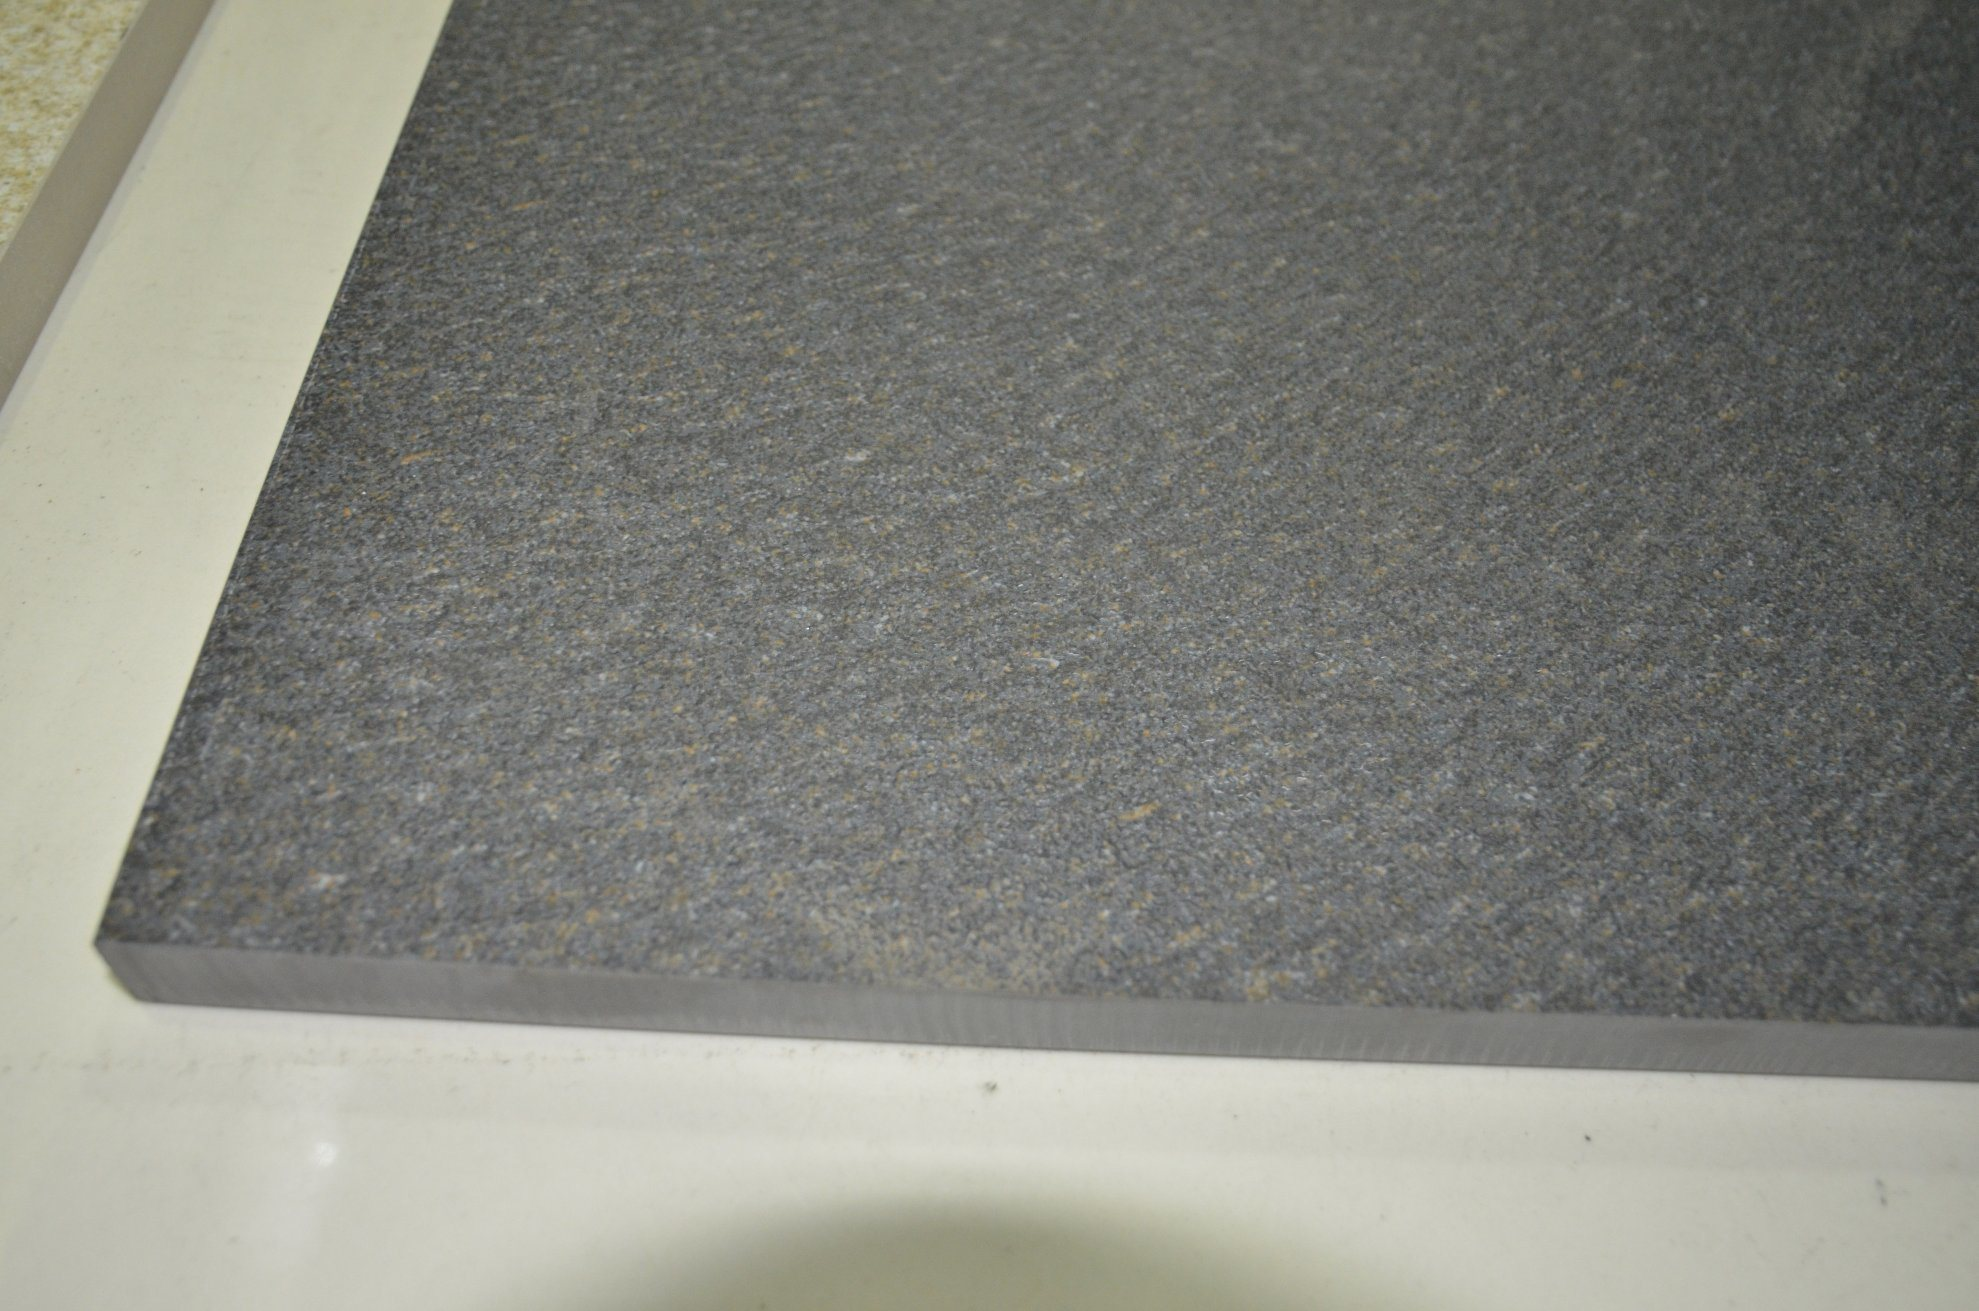 China Cheap Non-Slip Outdoor Flooring 20mm Thickness Porcelain Tiles ...